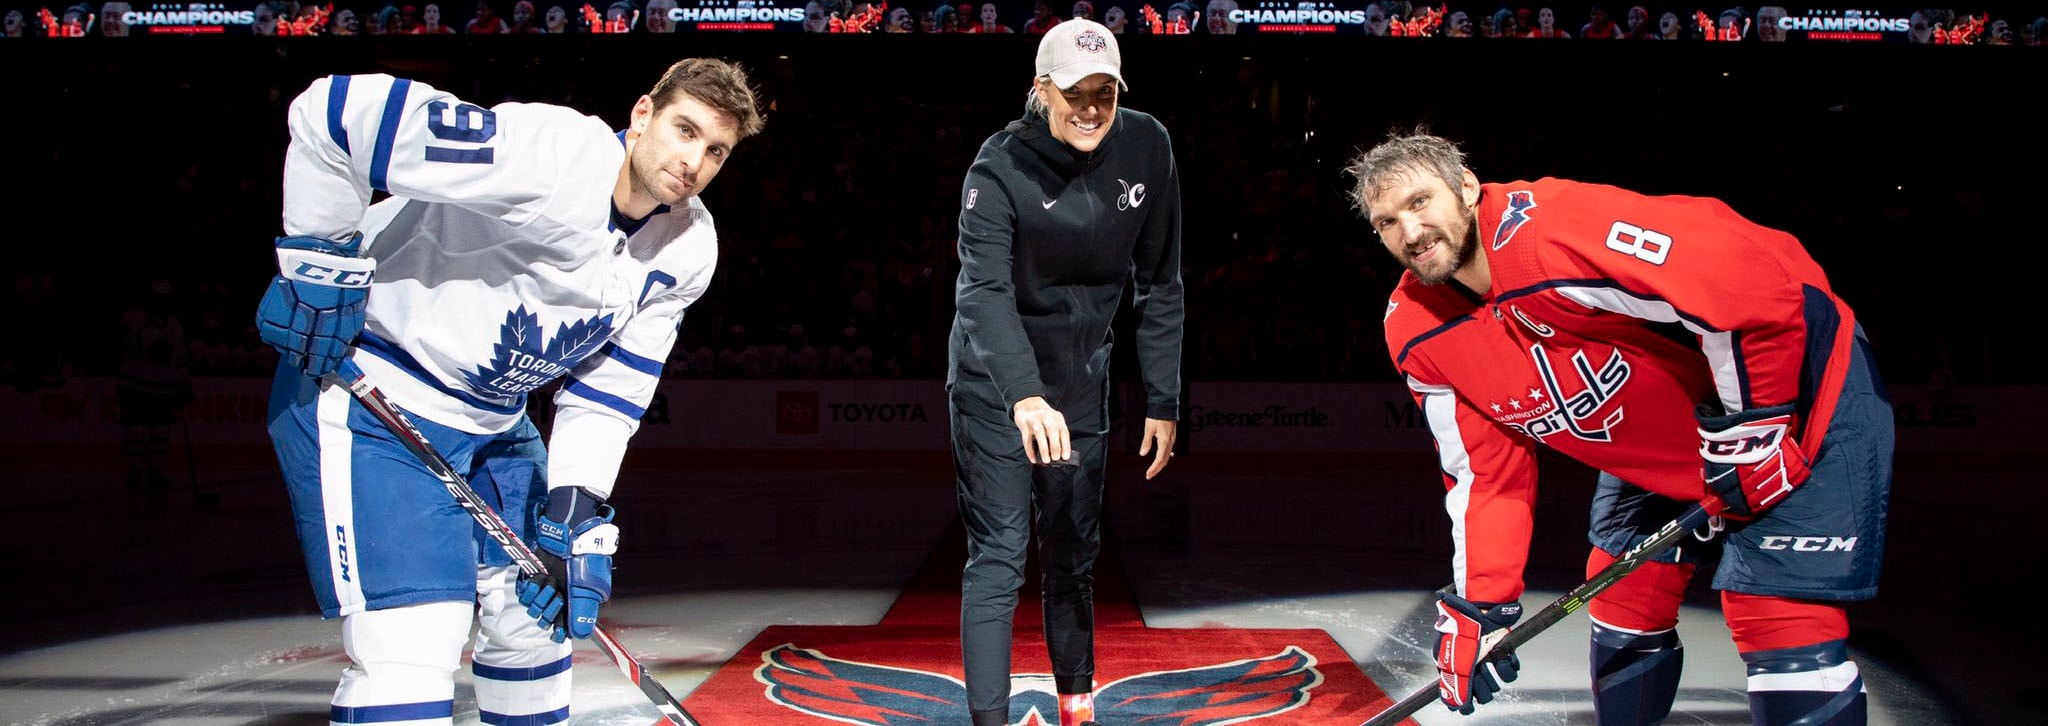 Elena Delle Donne drops puck at Capitals game